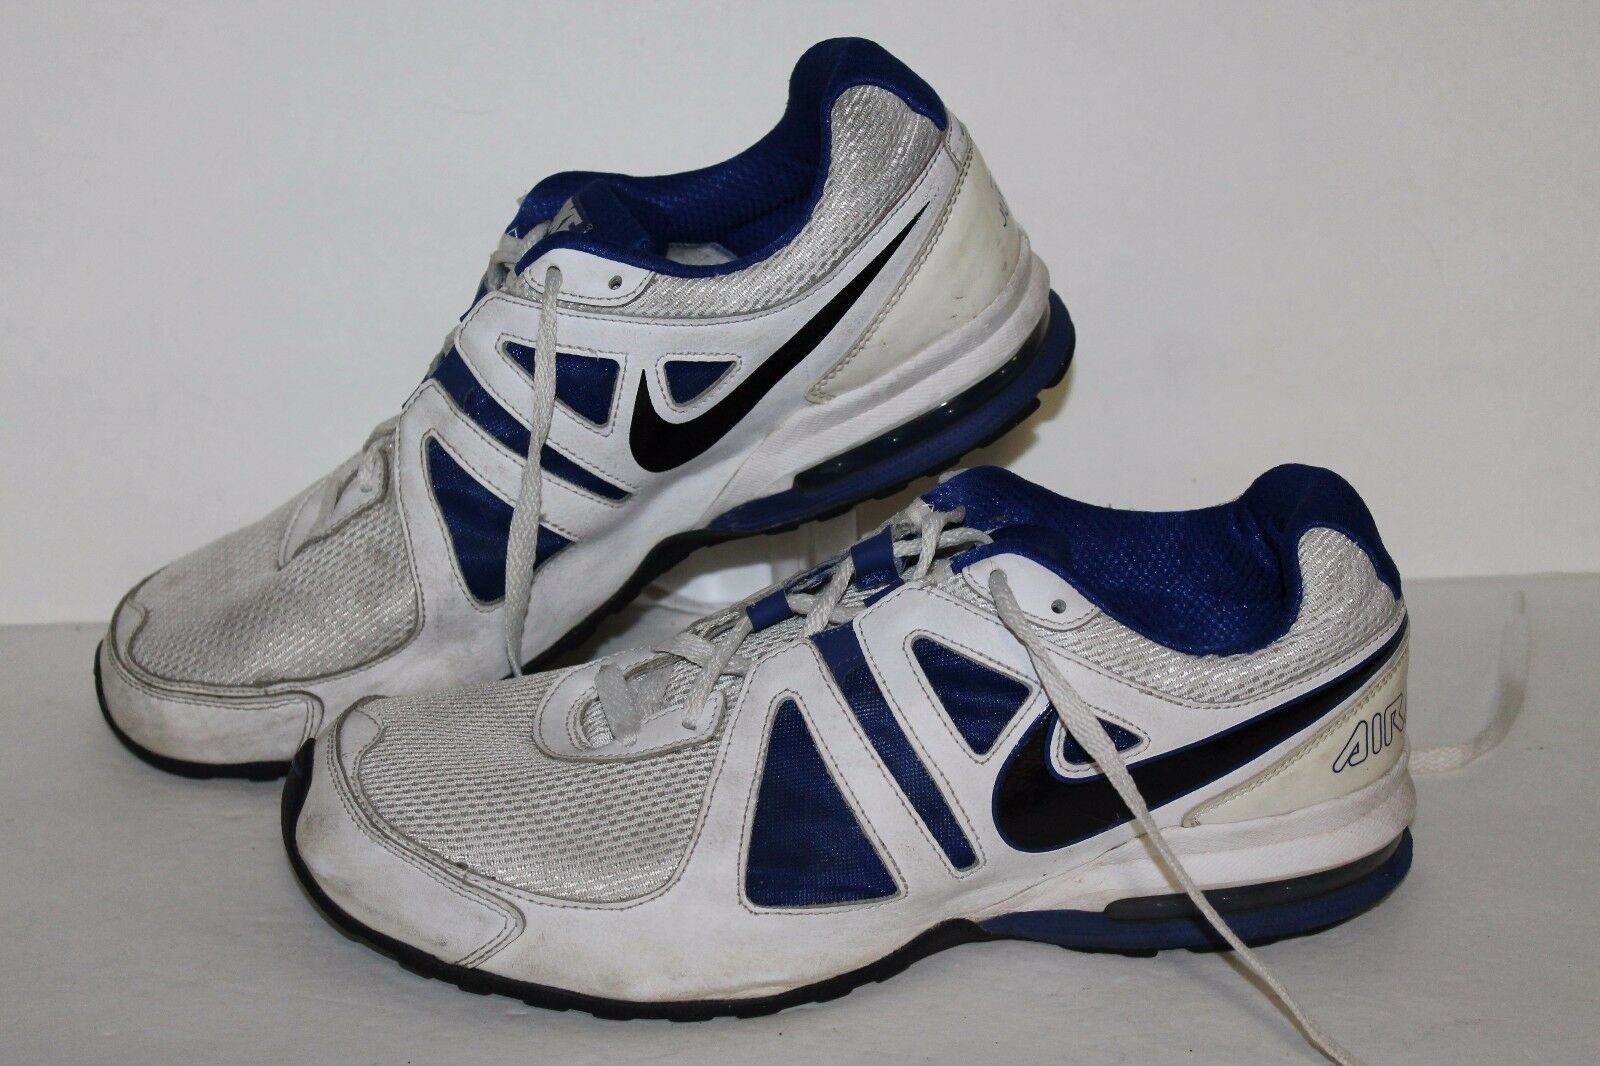 Nike Air Max Limitless Running Shoes, Wht/Royal/Blk, Men's US 11.5  Wild casual shoes